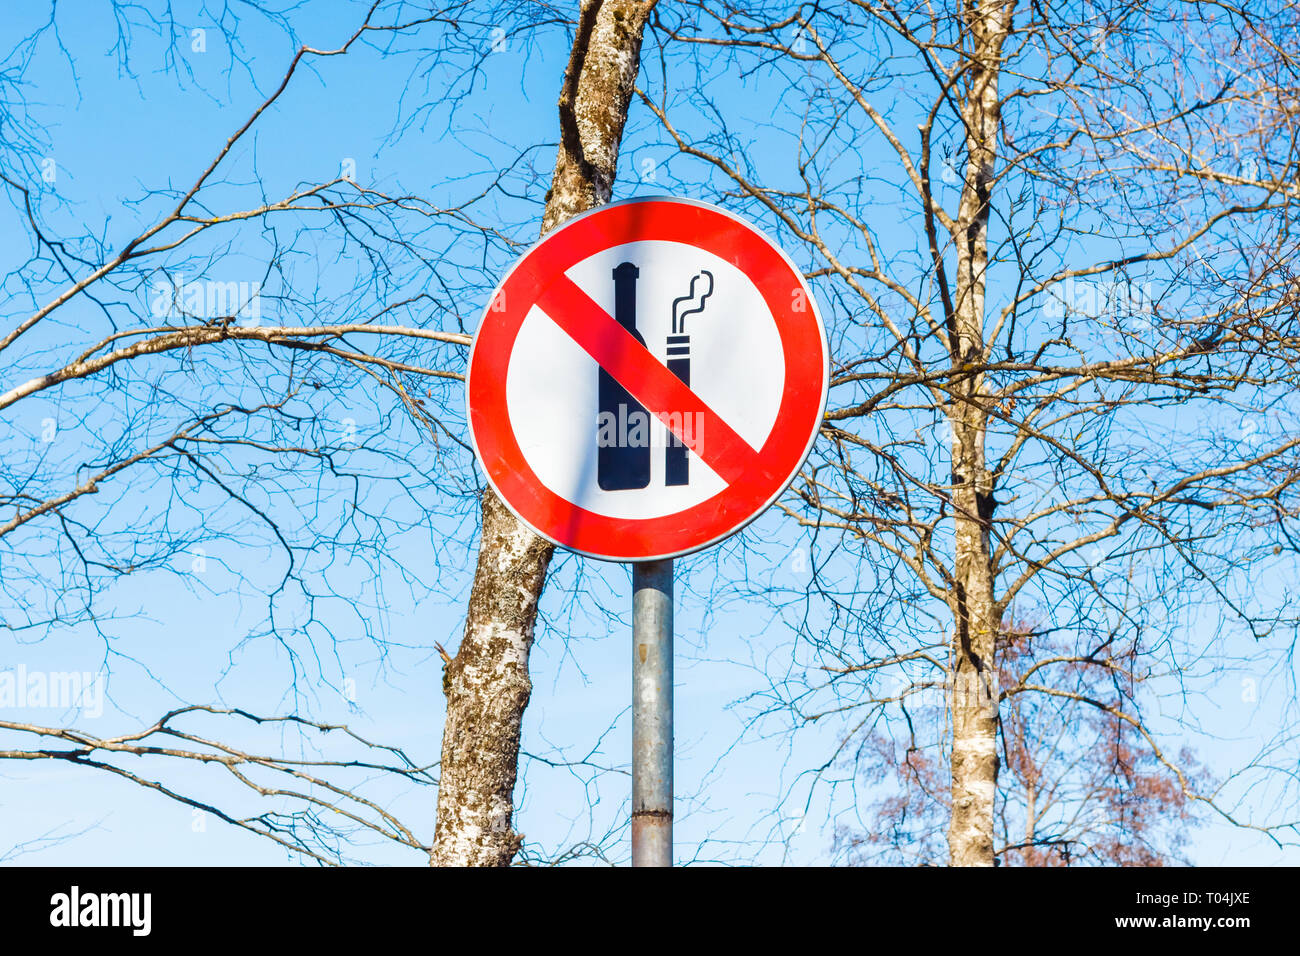 Sign not to drink alcohol and do not smoke in the park - Stock Image